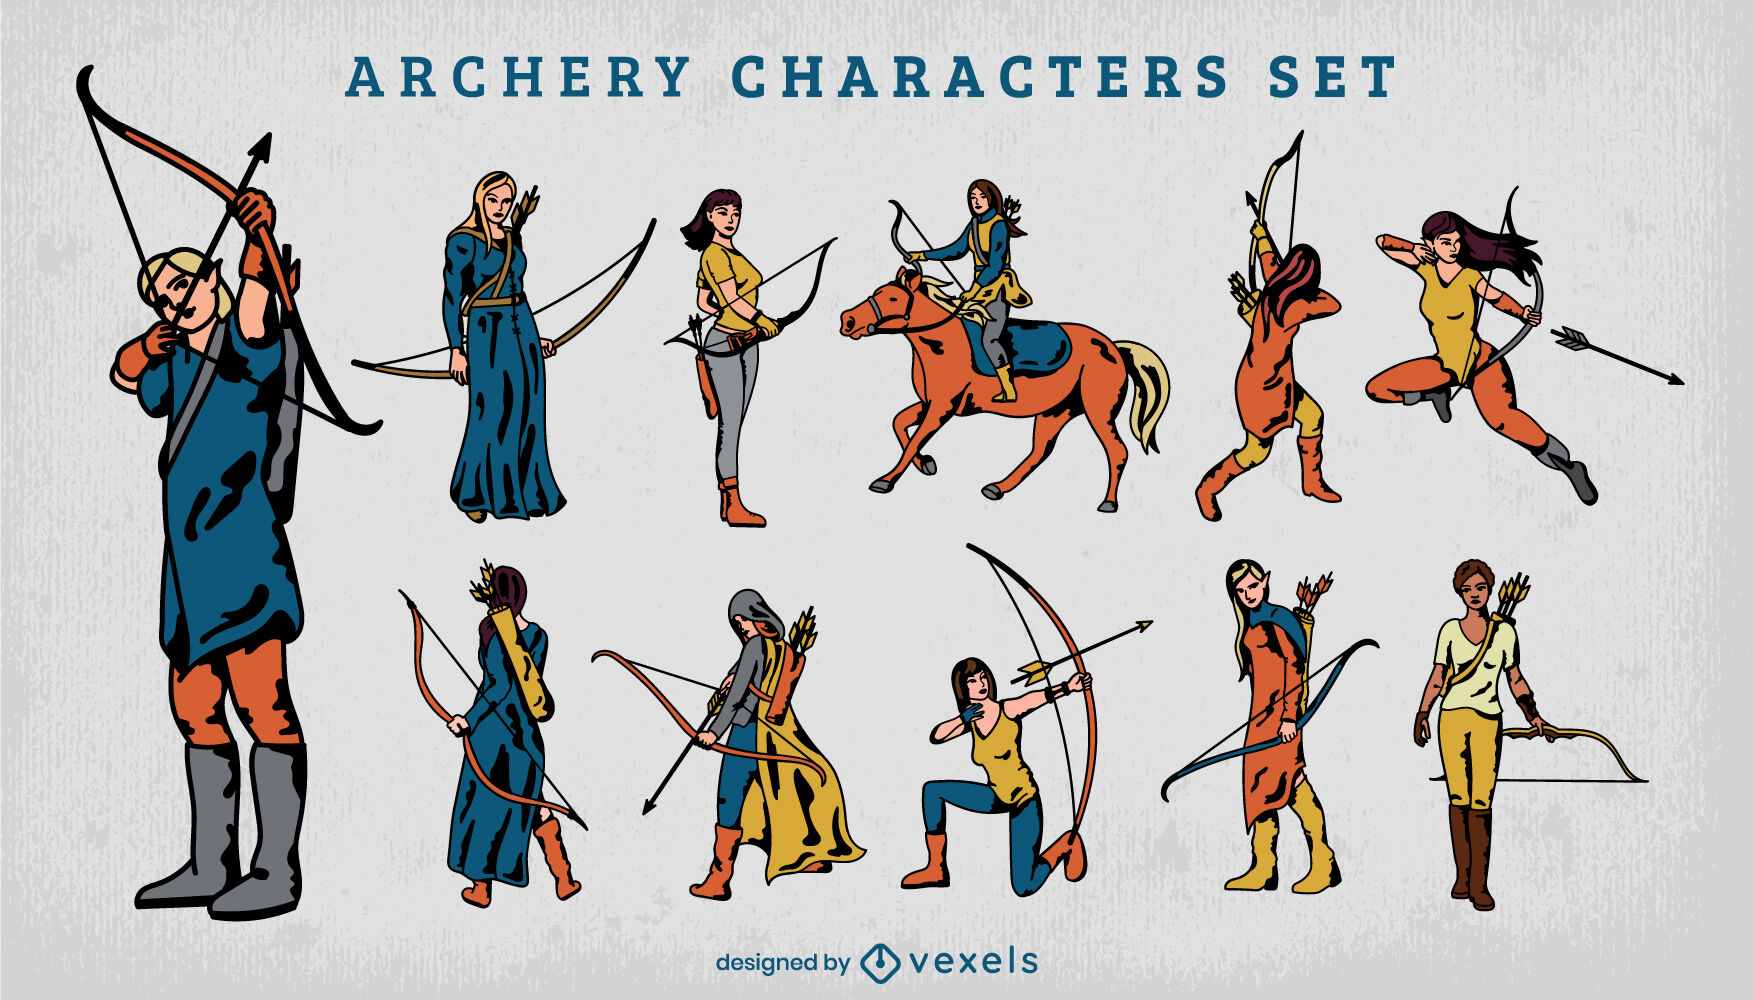 Archery characters color stroke set